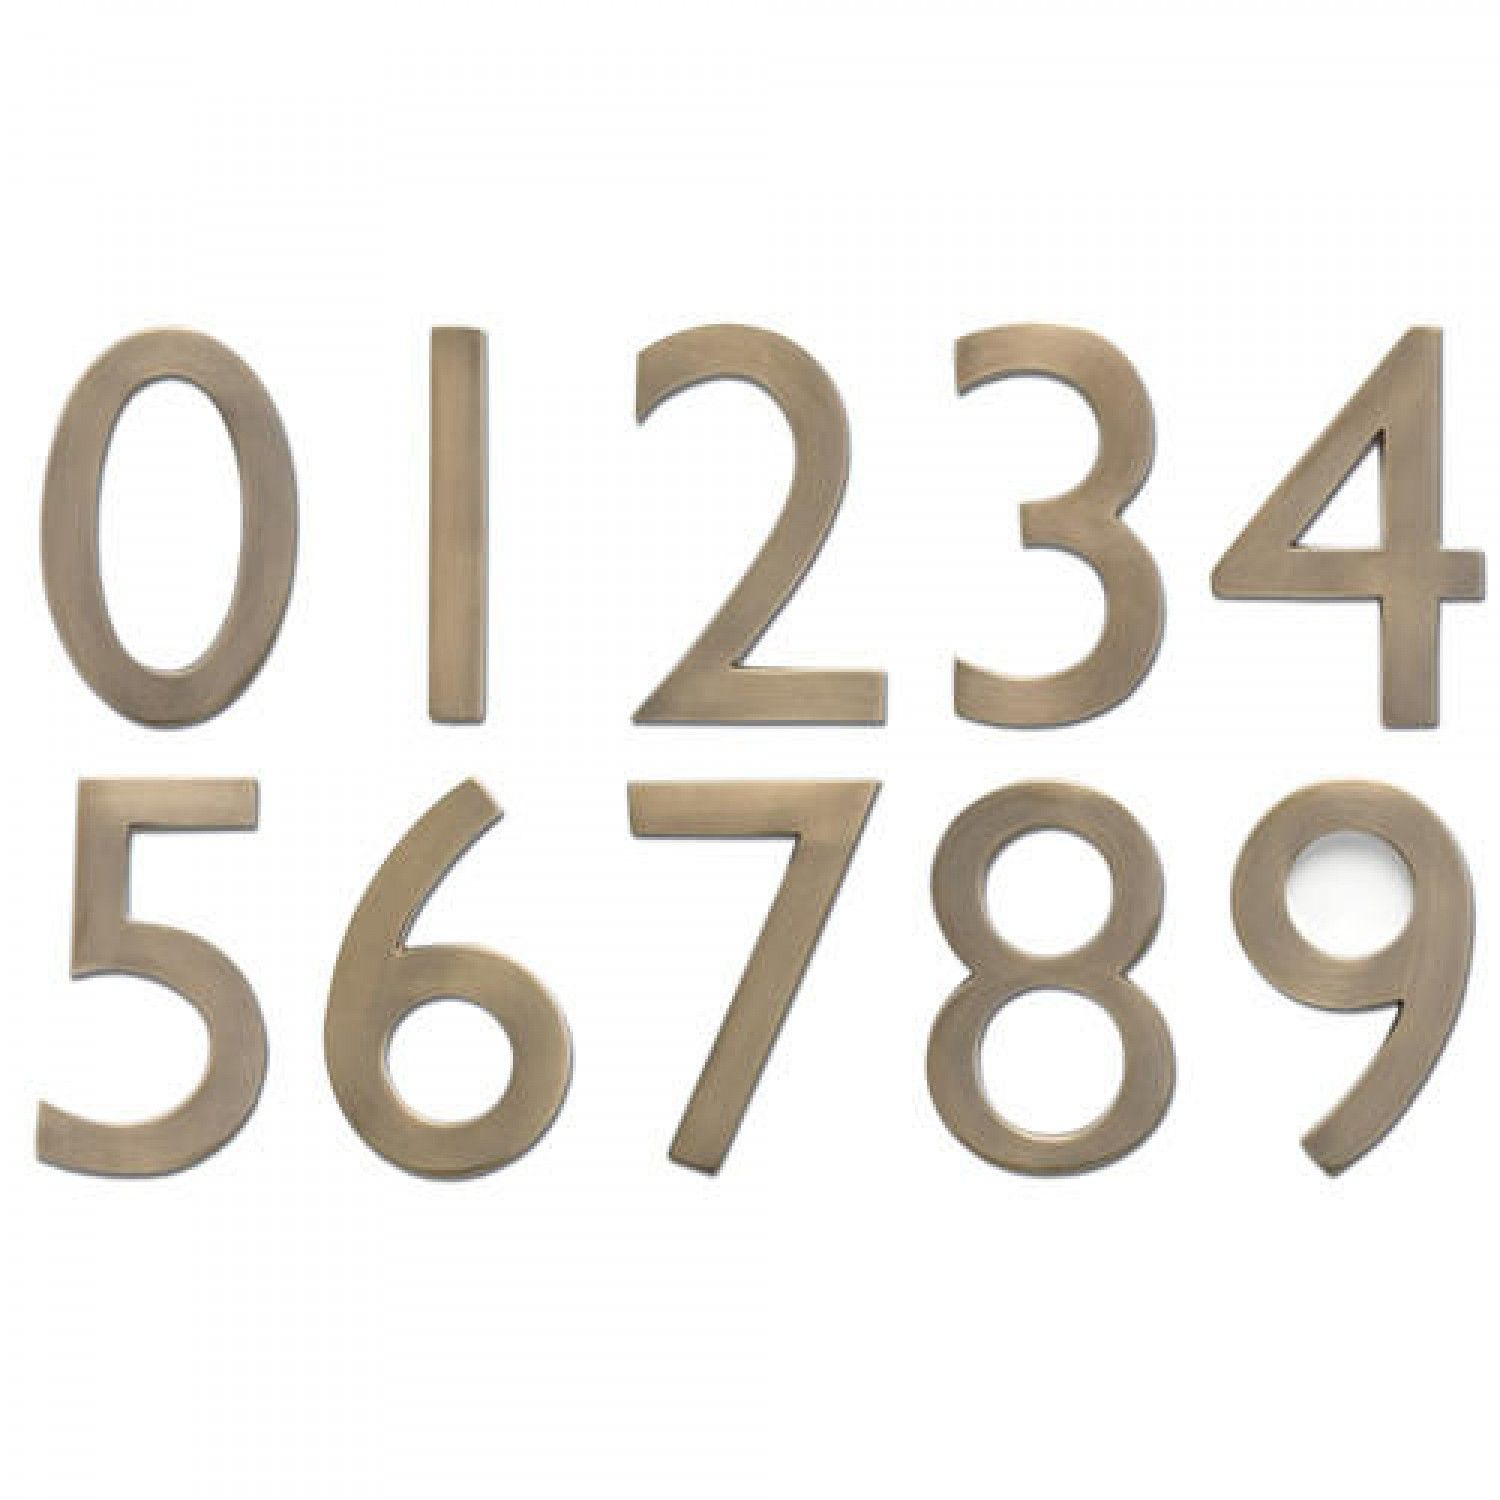 Solid Brass Floating House Numbers Address Plaques And House Numbers Outdoor House Numbers Traditional House Numbers Floating House